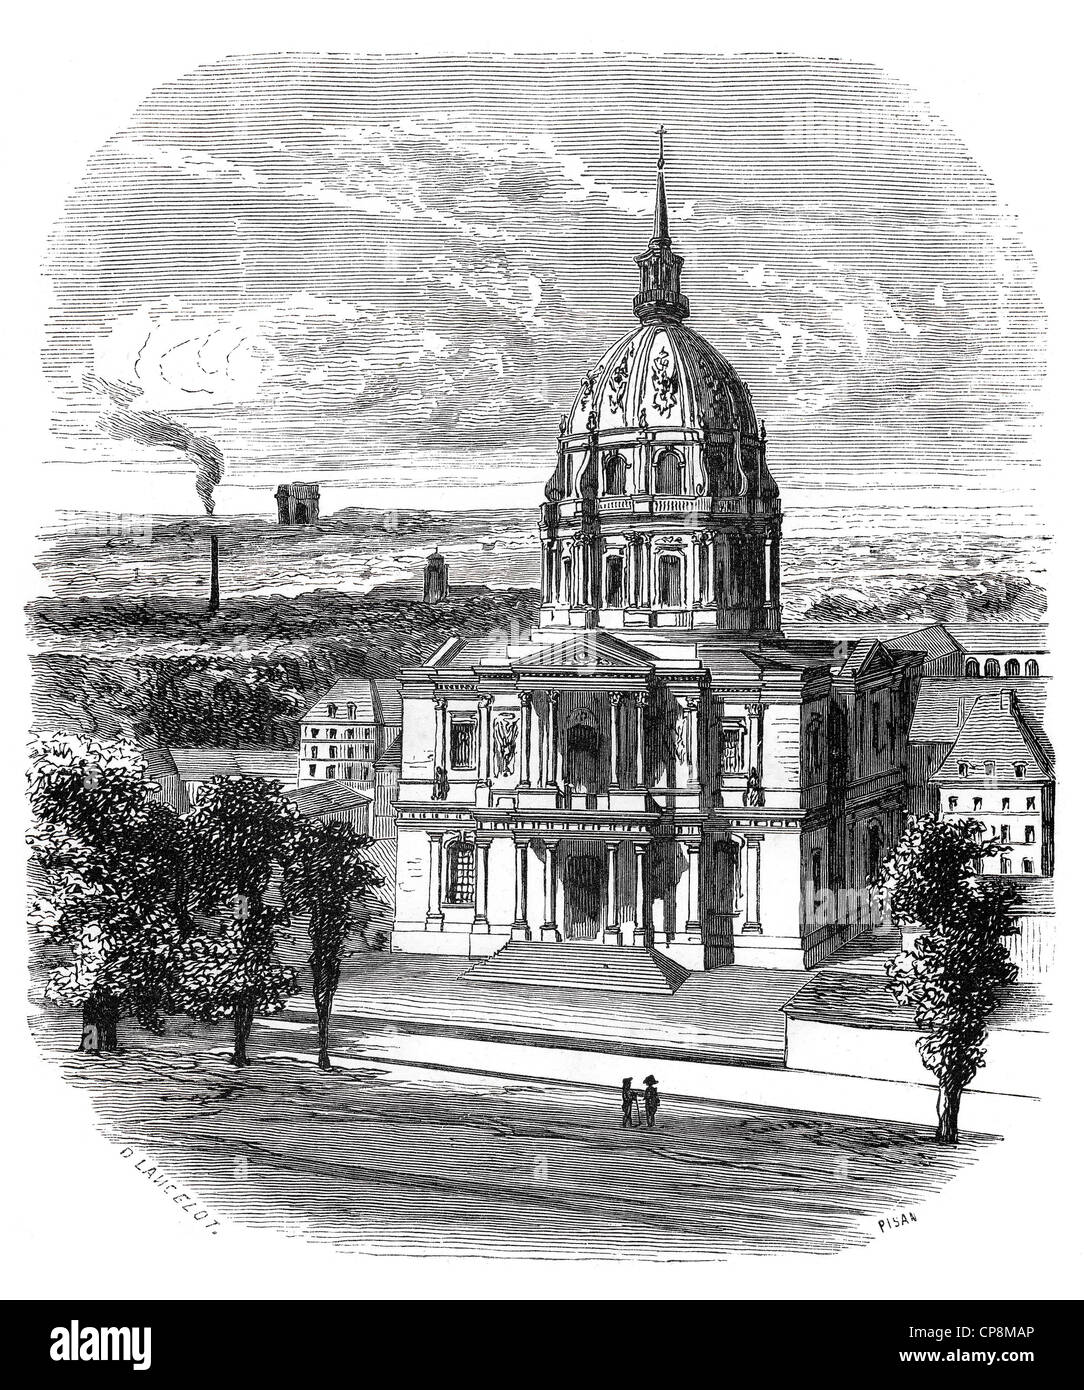 The L'Hôtel National des Invalides, The National Residence of the Invalids, built by the architects Libéral - Stock Image